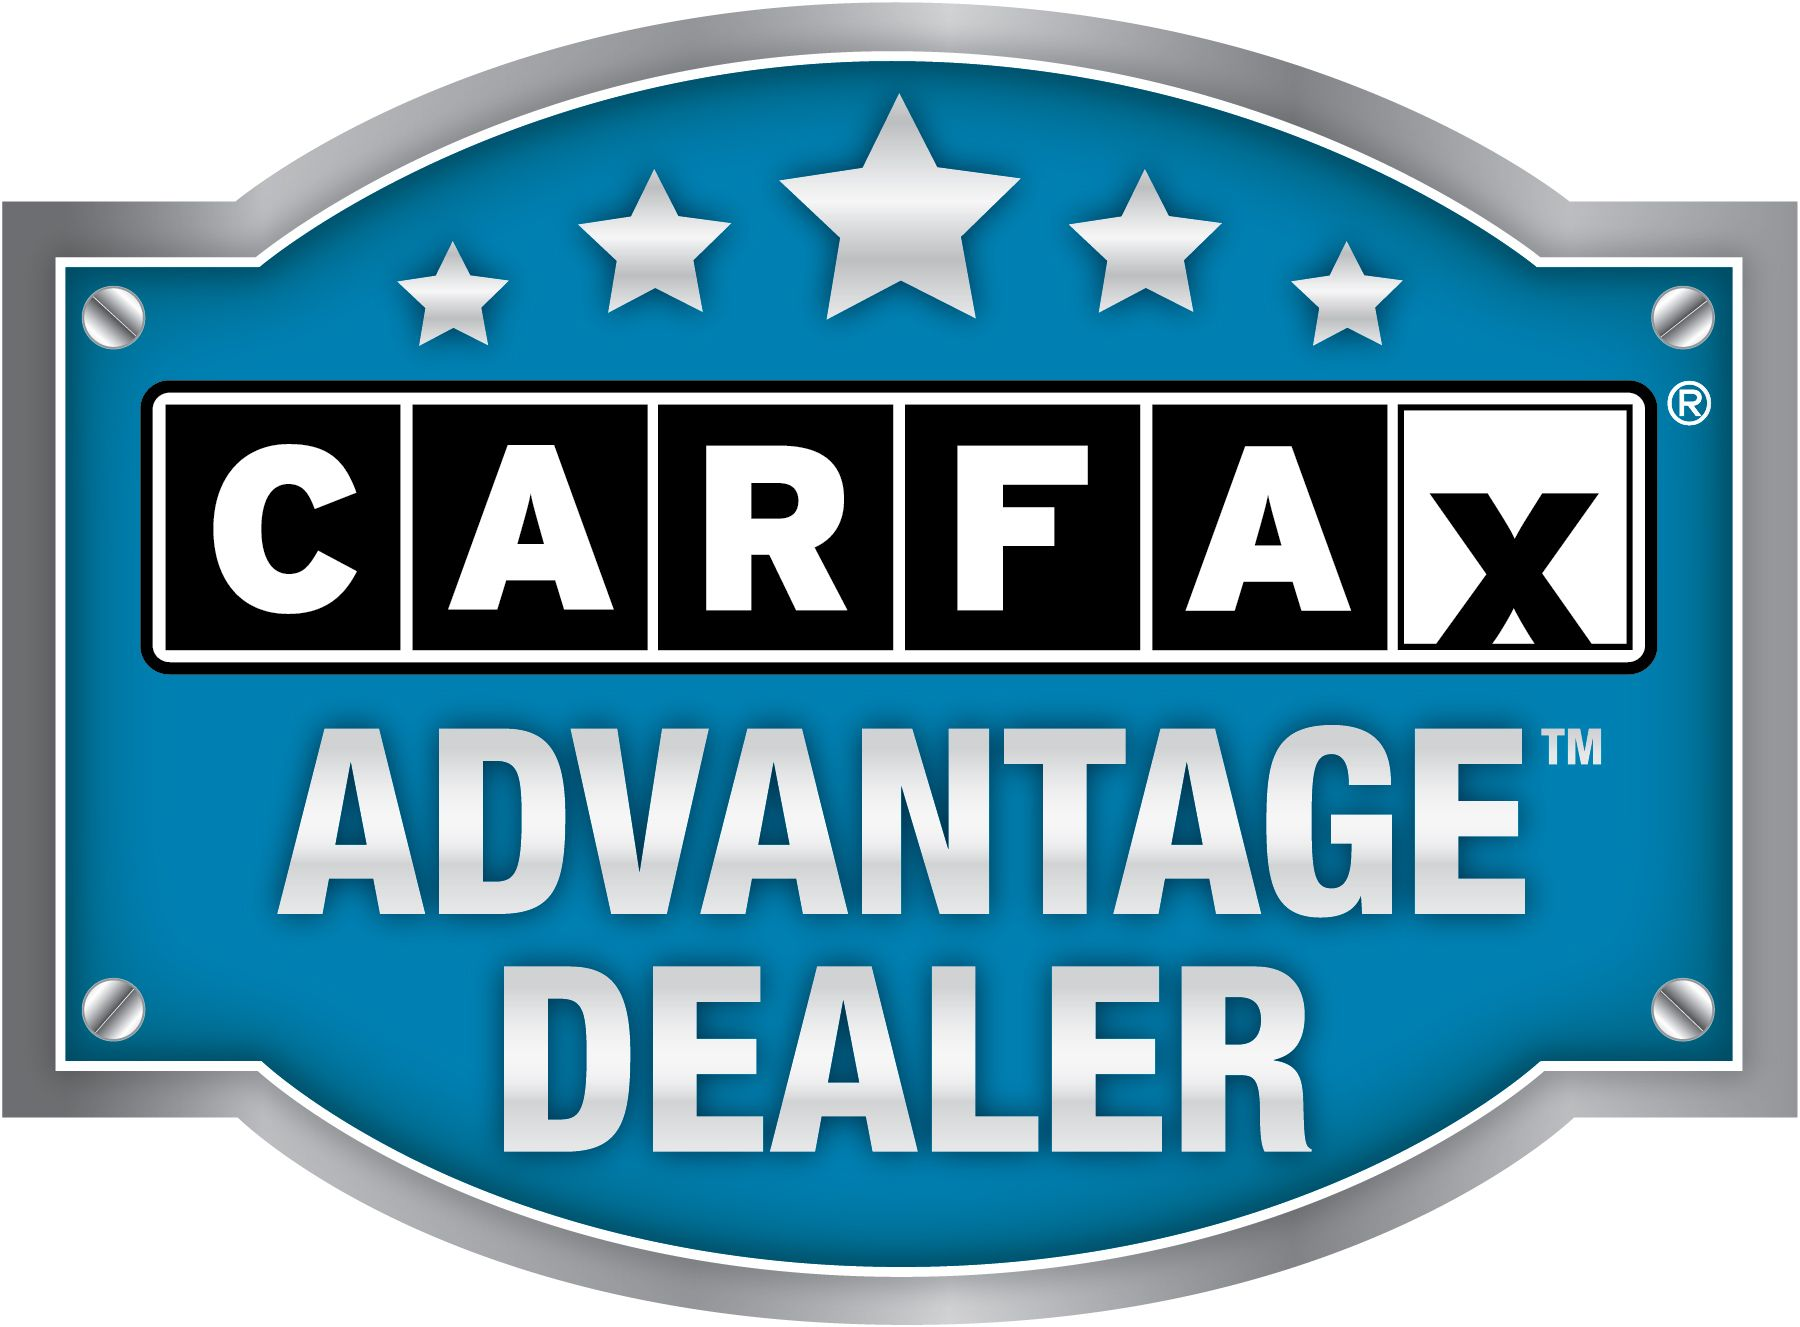 it s easy to used cars today from dealers like carfax thanks to the internet you do not have to leave your home to check out available used vehicles